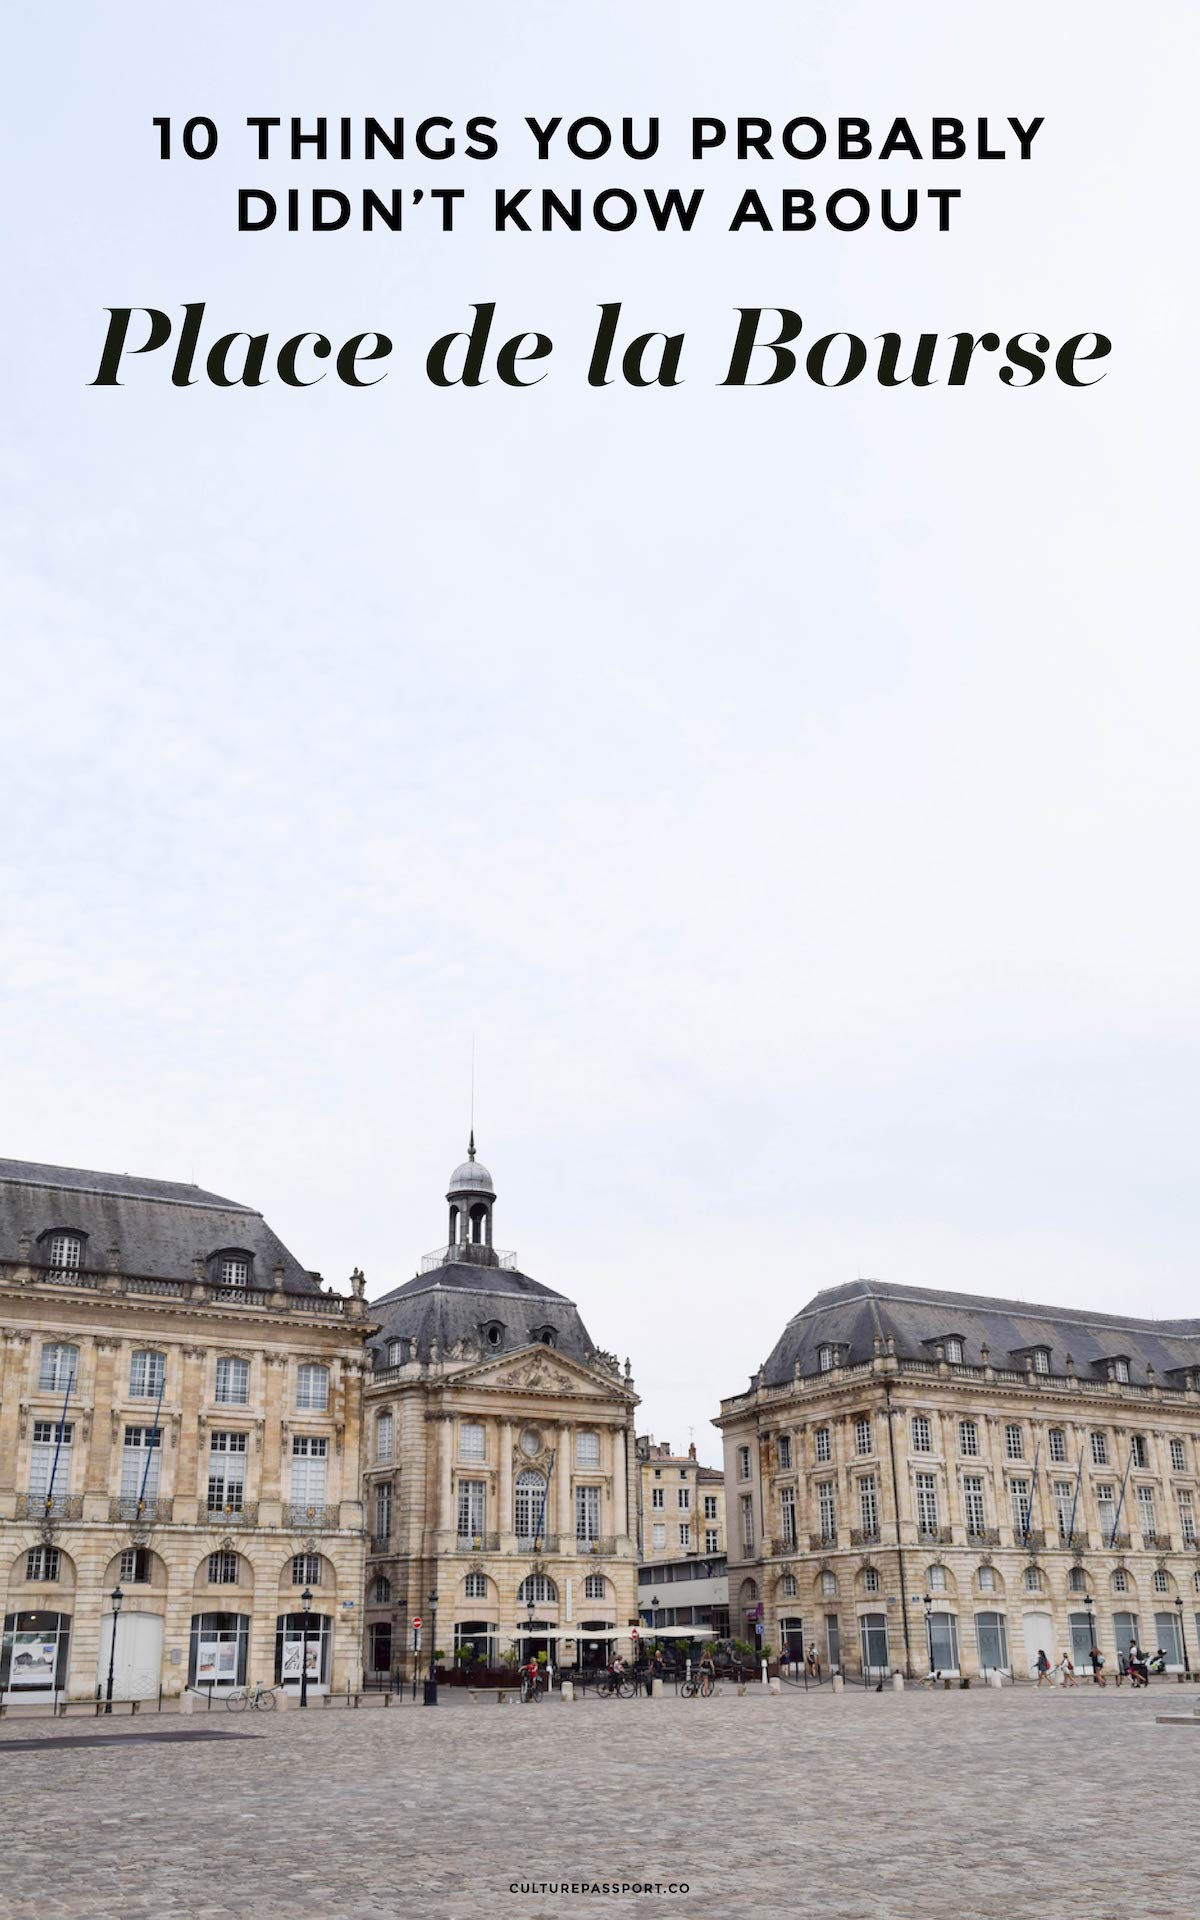 Things You Probably Didn't Know About Place de la Bourse